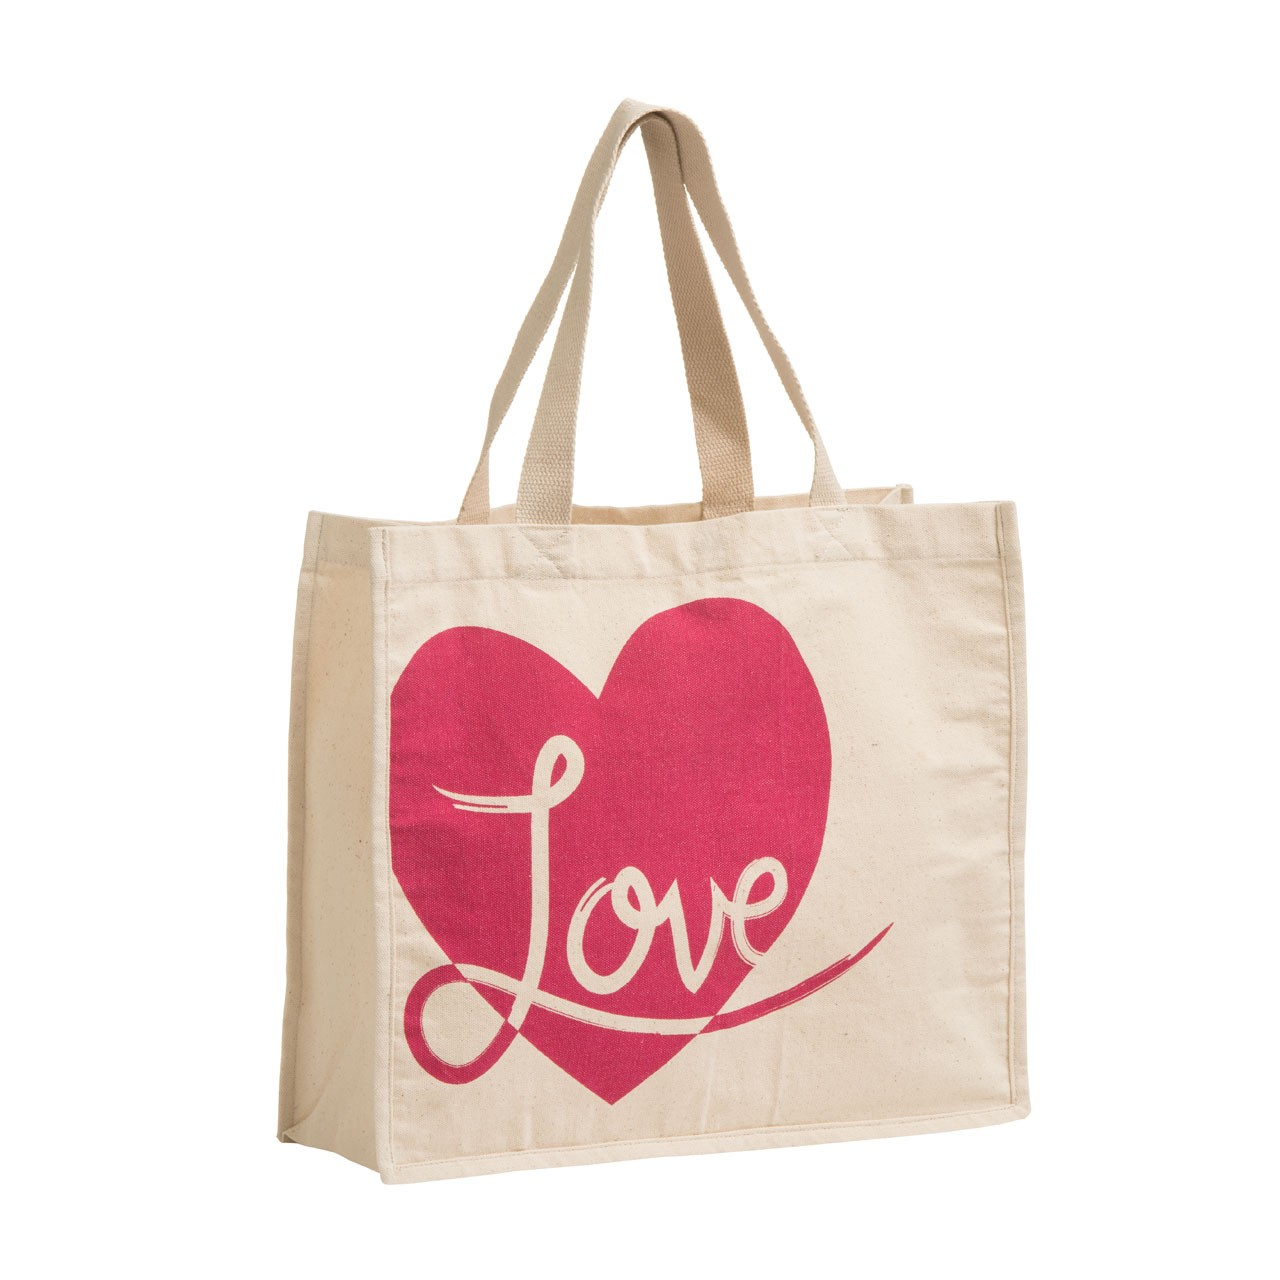 Love Shopping Bag Cotton Canvas